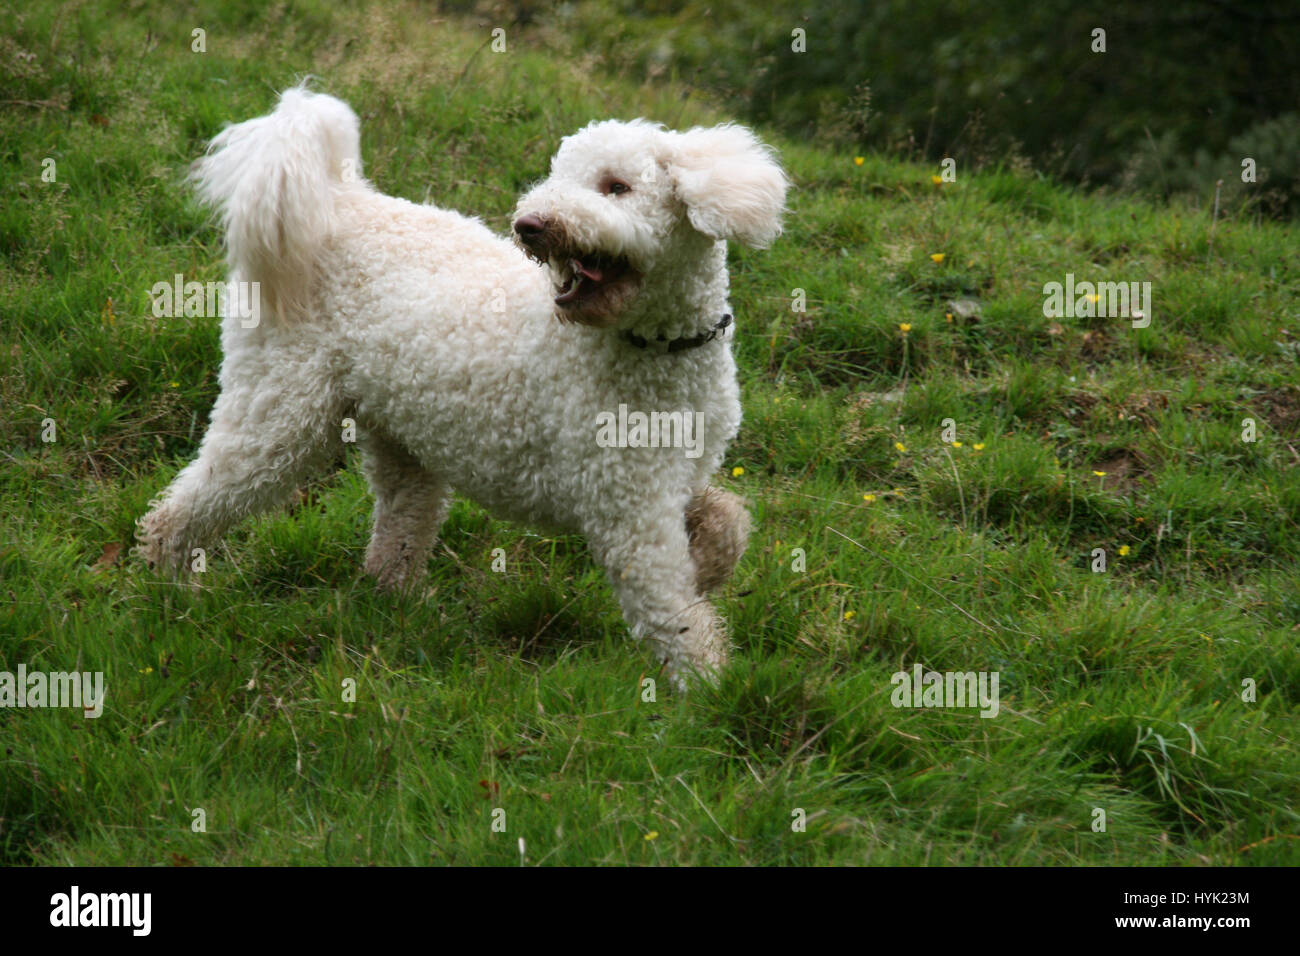 white labradoodle stockfotos white labradoodle bilder alamy. Black Bedroom Furniture Sets. Home Design Ideas